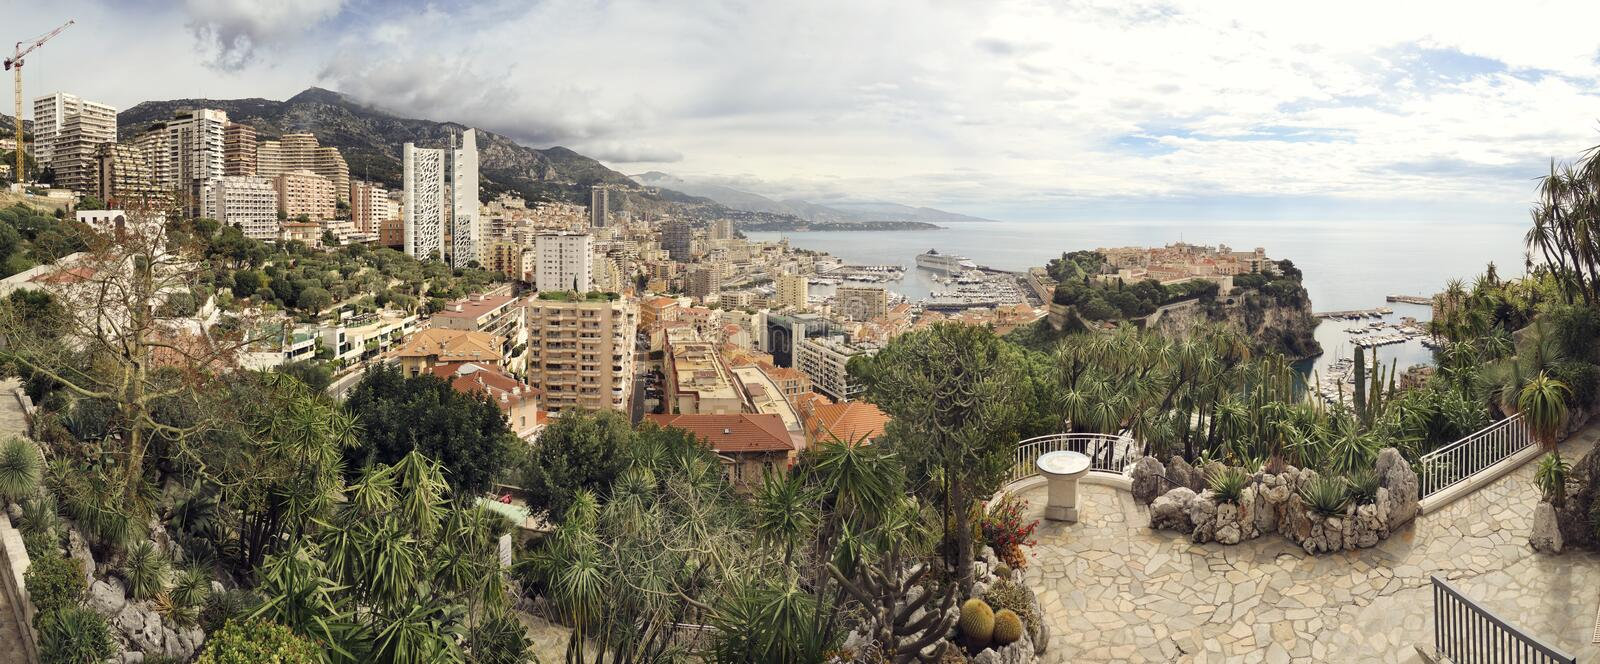 Panoramic photograph of principality of Monaco. / Monte Cralo stock photos